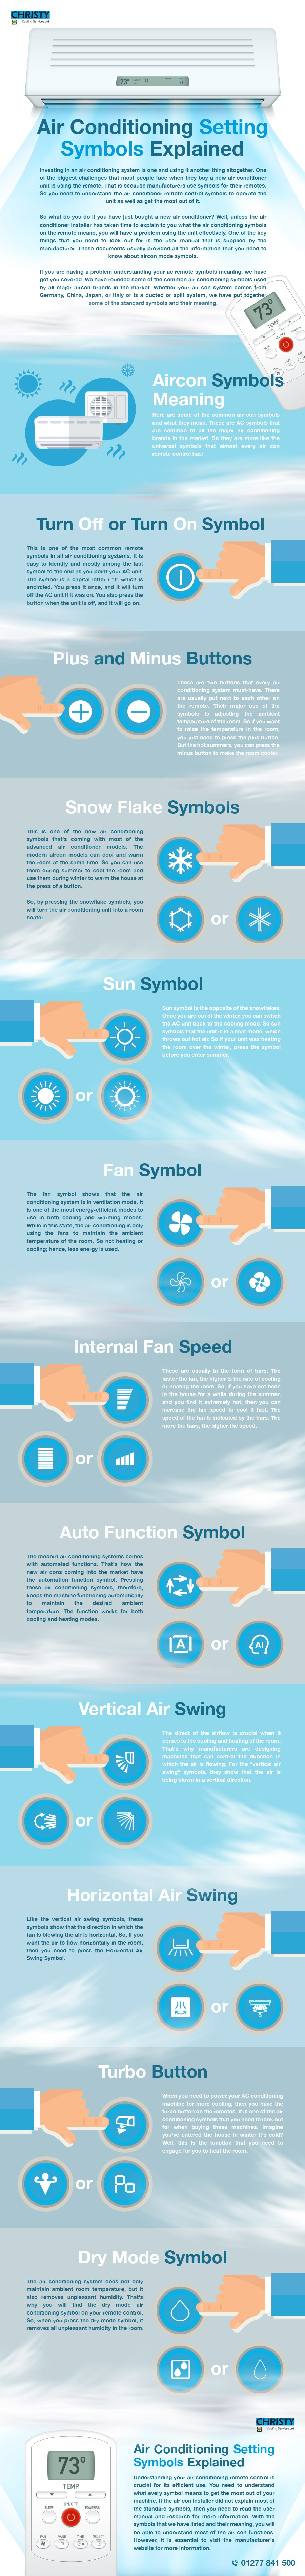 Air Conditioning Setting Symbols Explained by Christy Cooling Services